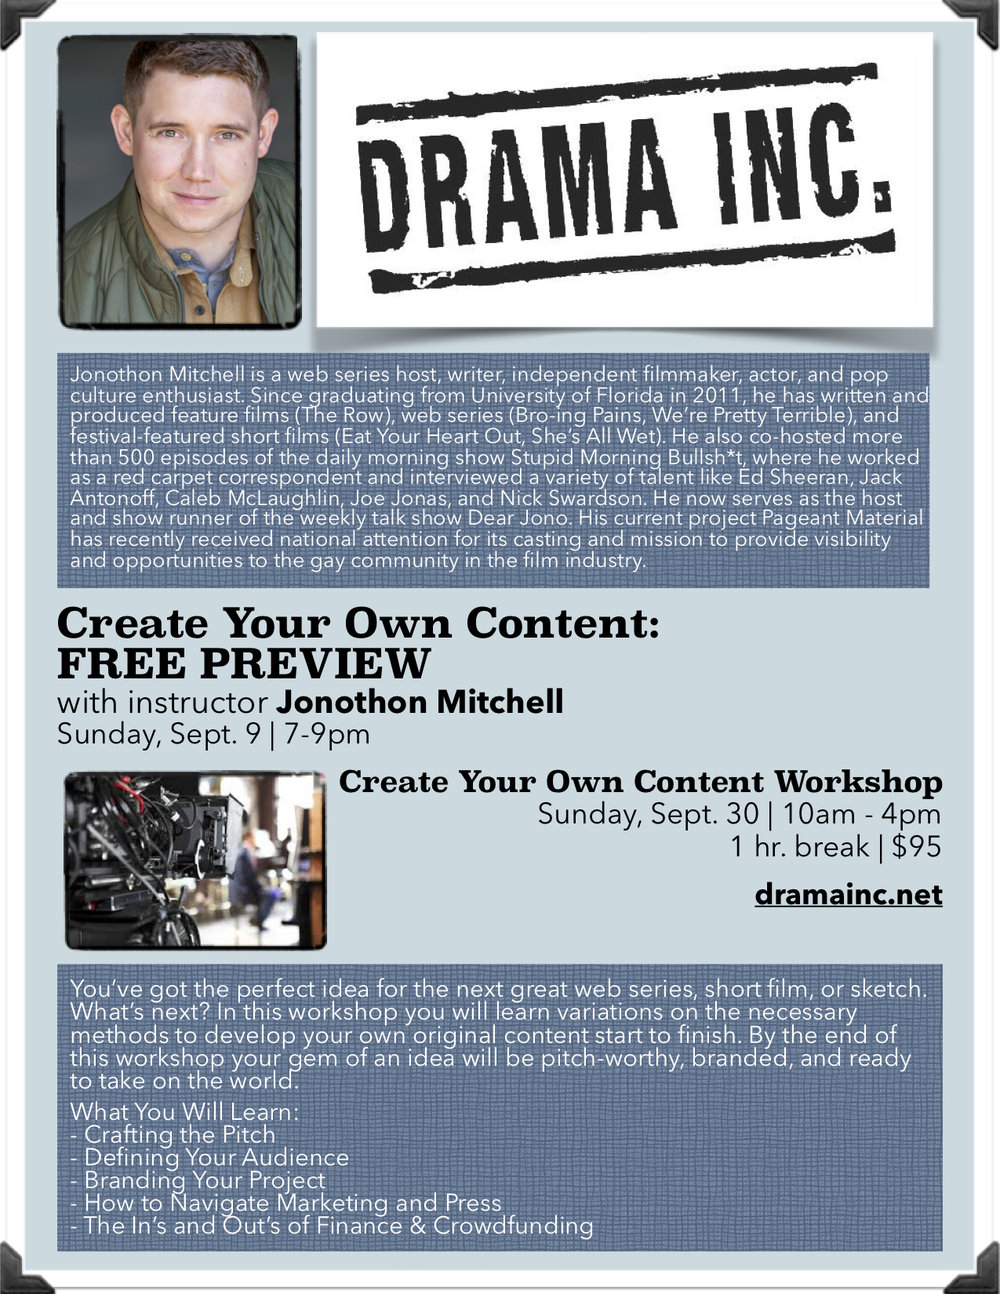 create your own content workshop.jpg